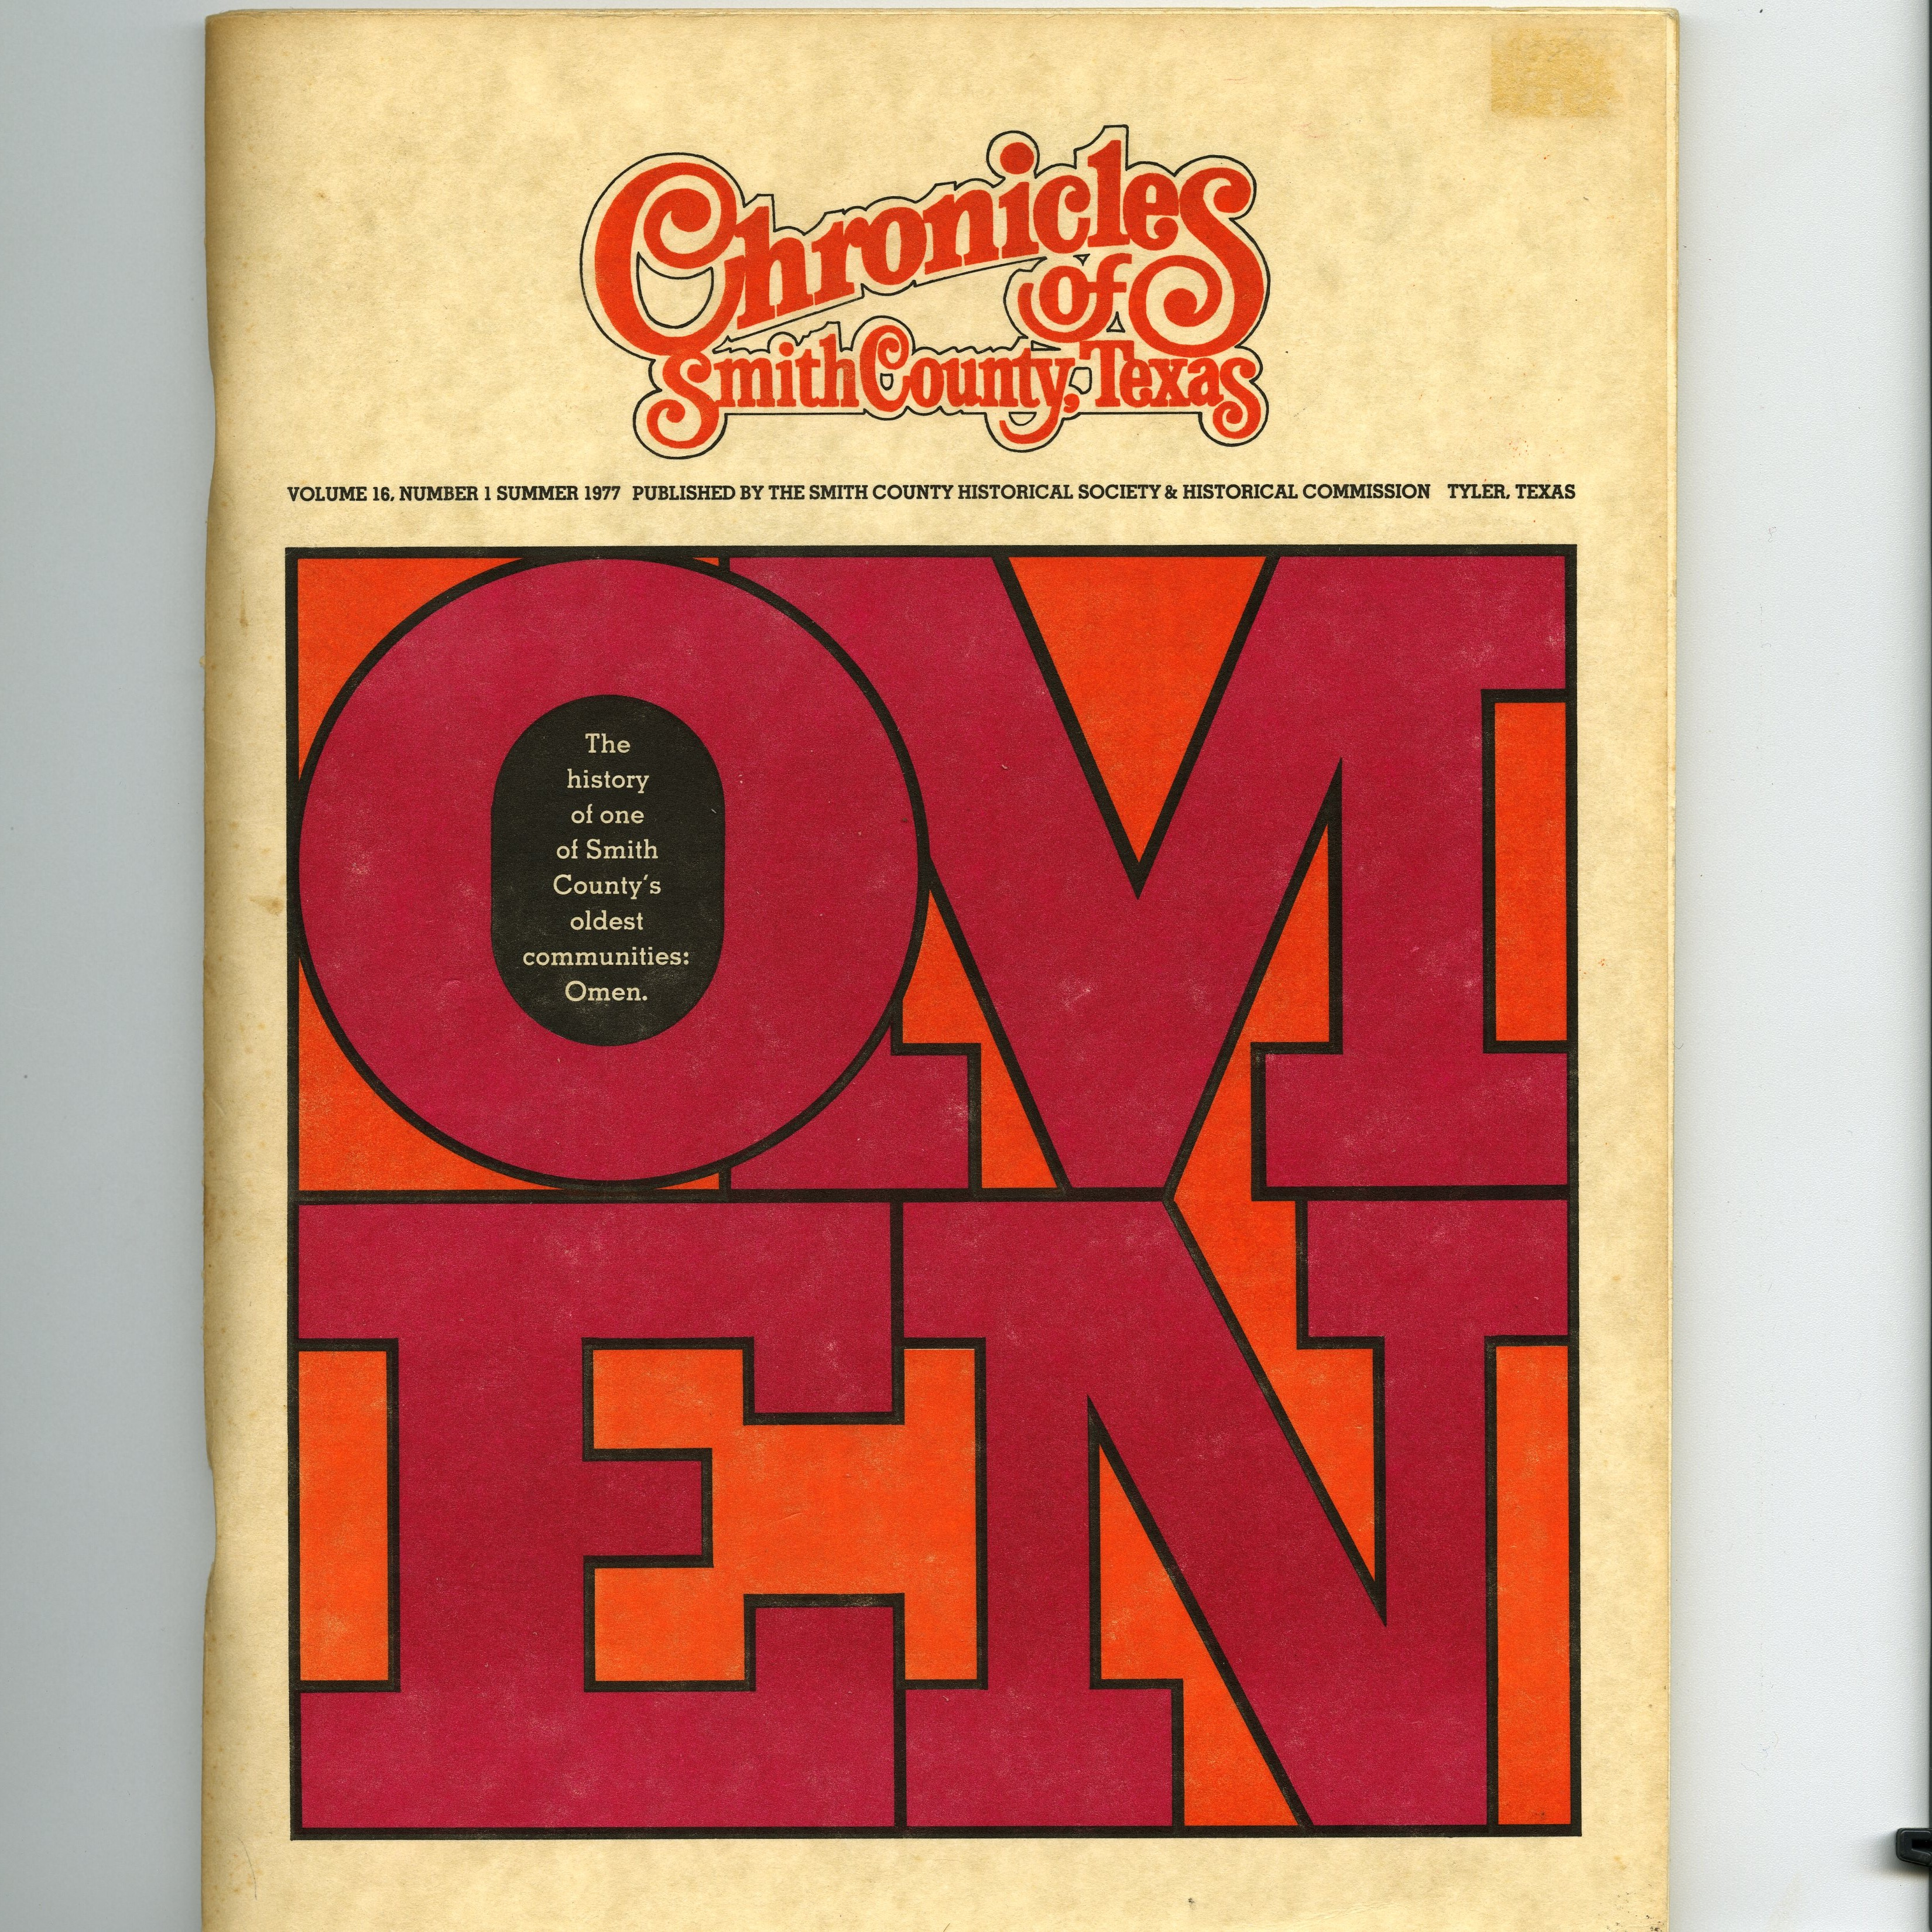 Chronicles of Smith County, Texas, Volume 16 Issue 1, Summer 1977.